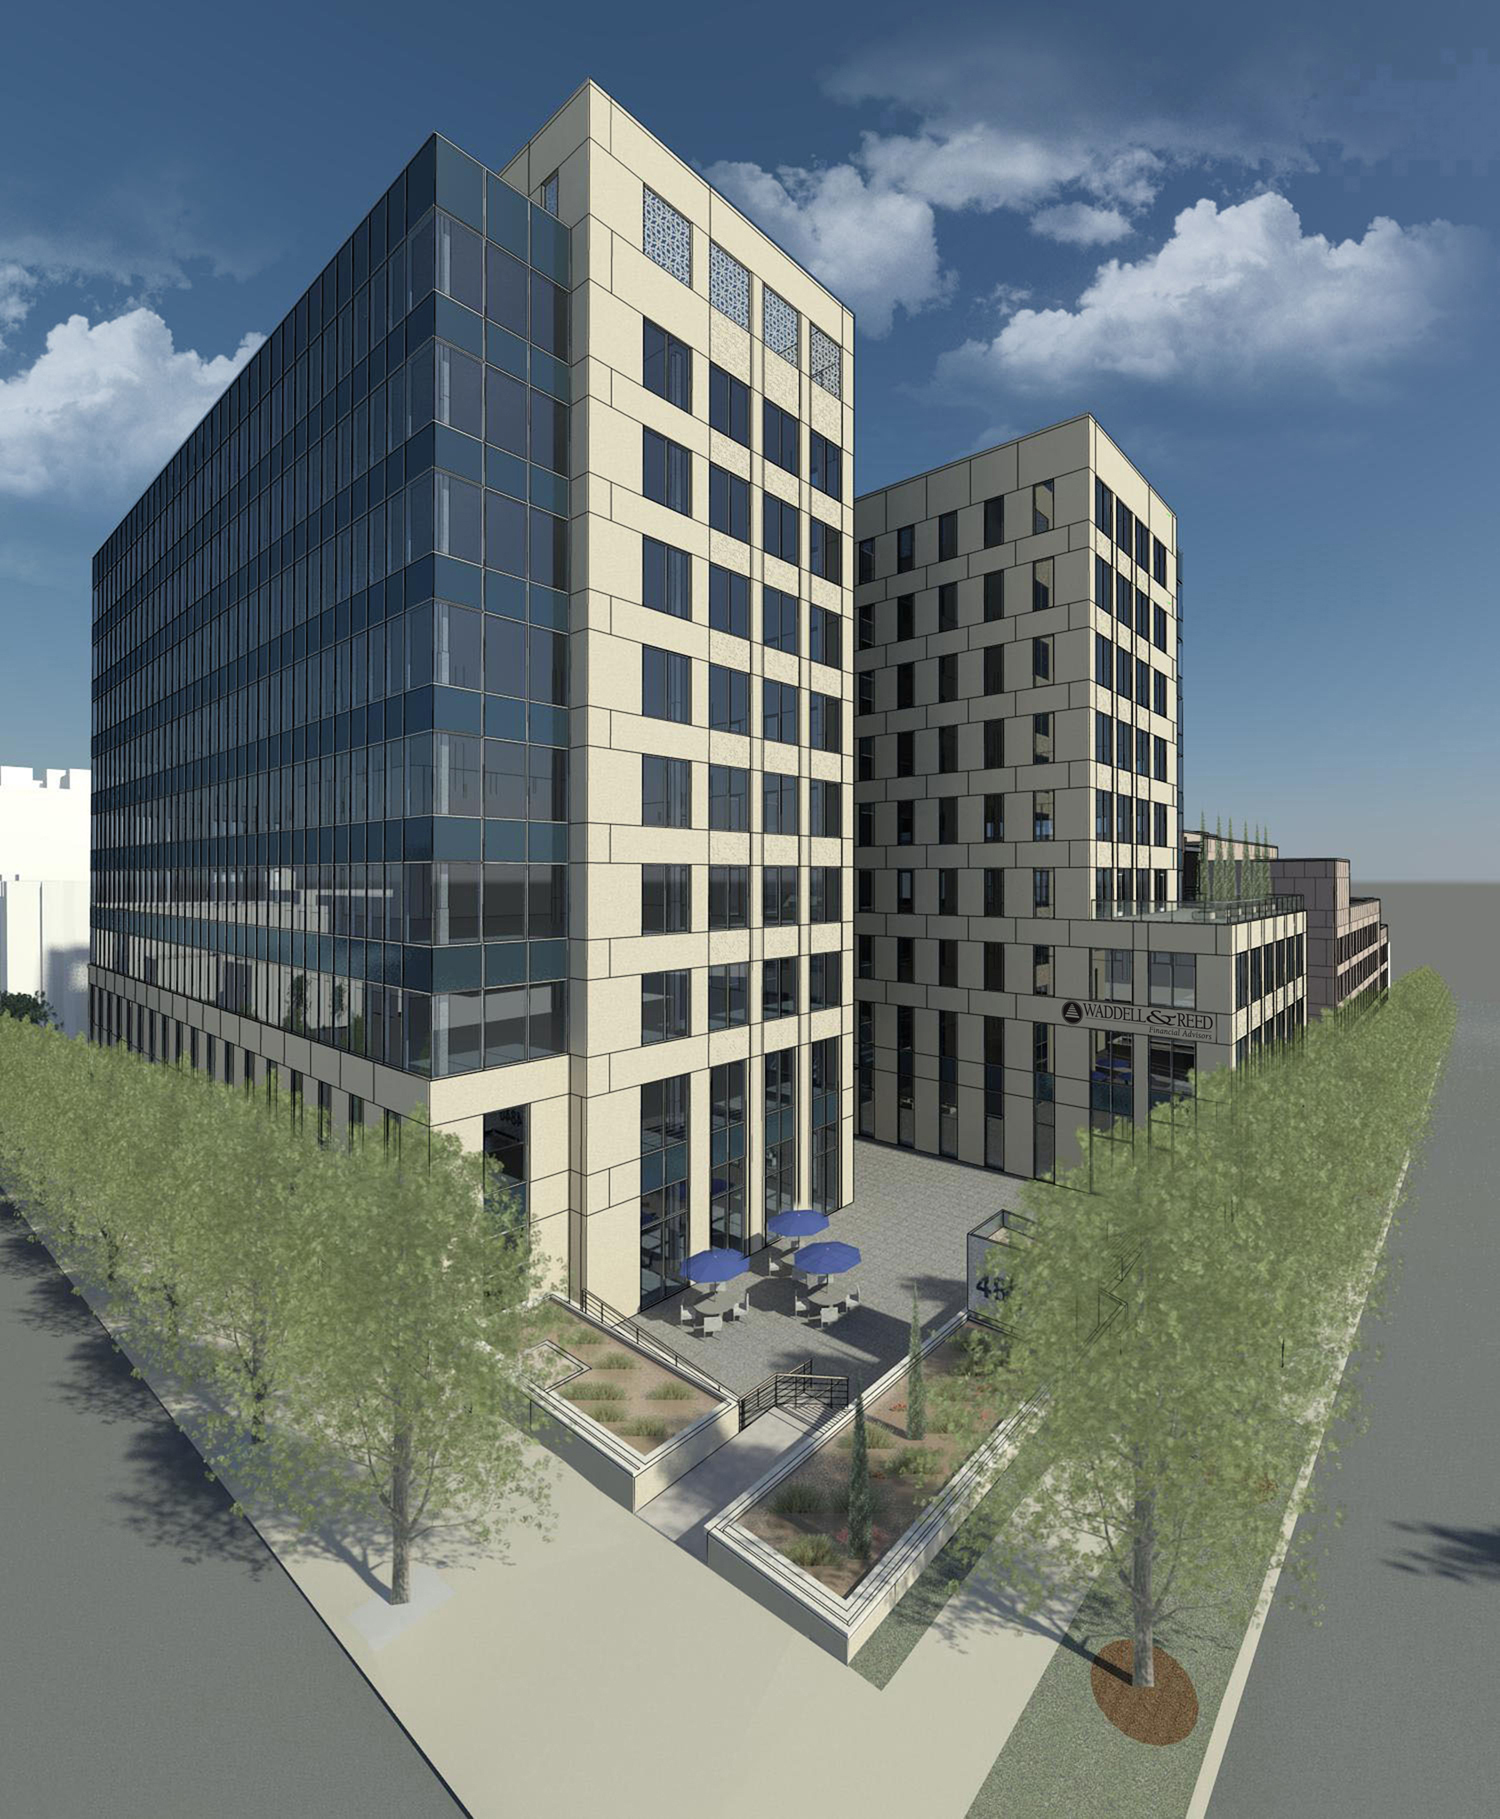 Waddell U0026 Reed To Open Financial Advisor Office In Plaza Vista Building |  Business Wire